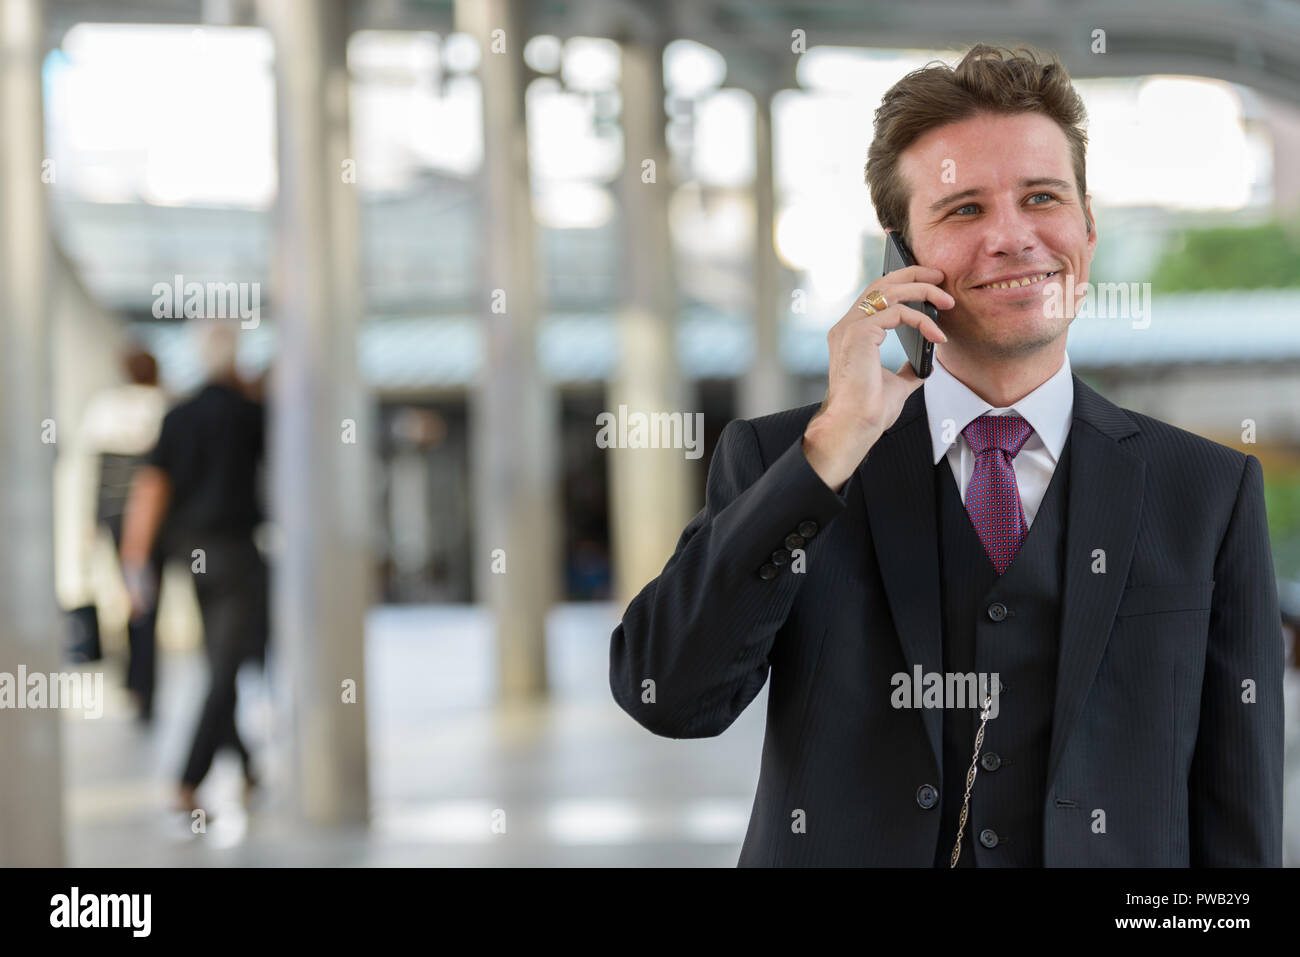 Happy thoughtful businessman smiling and talking on mobile phone Photo Stock